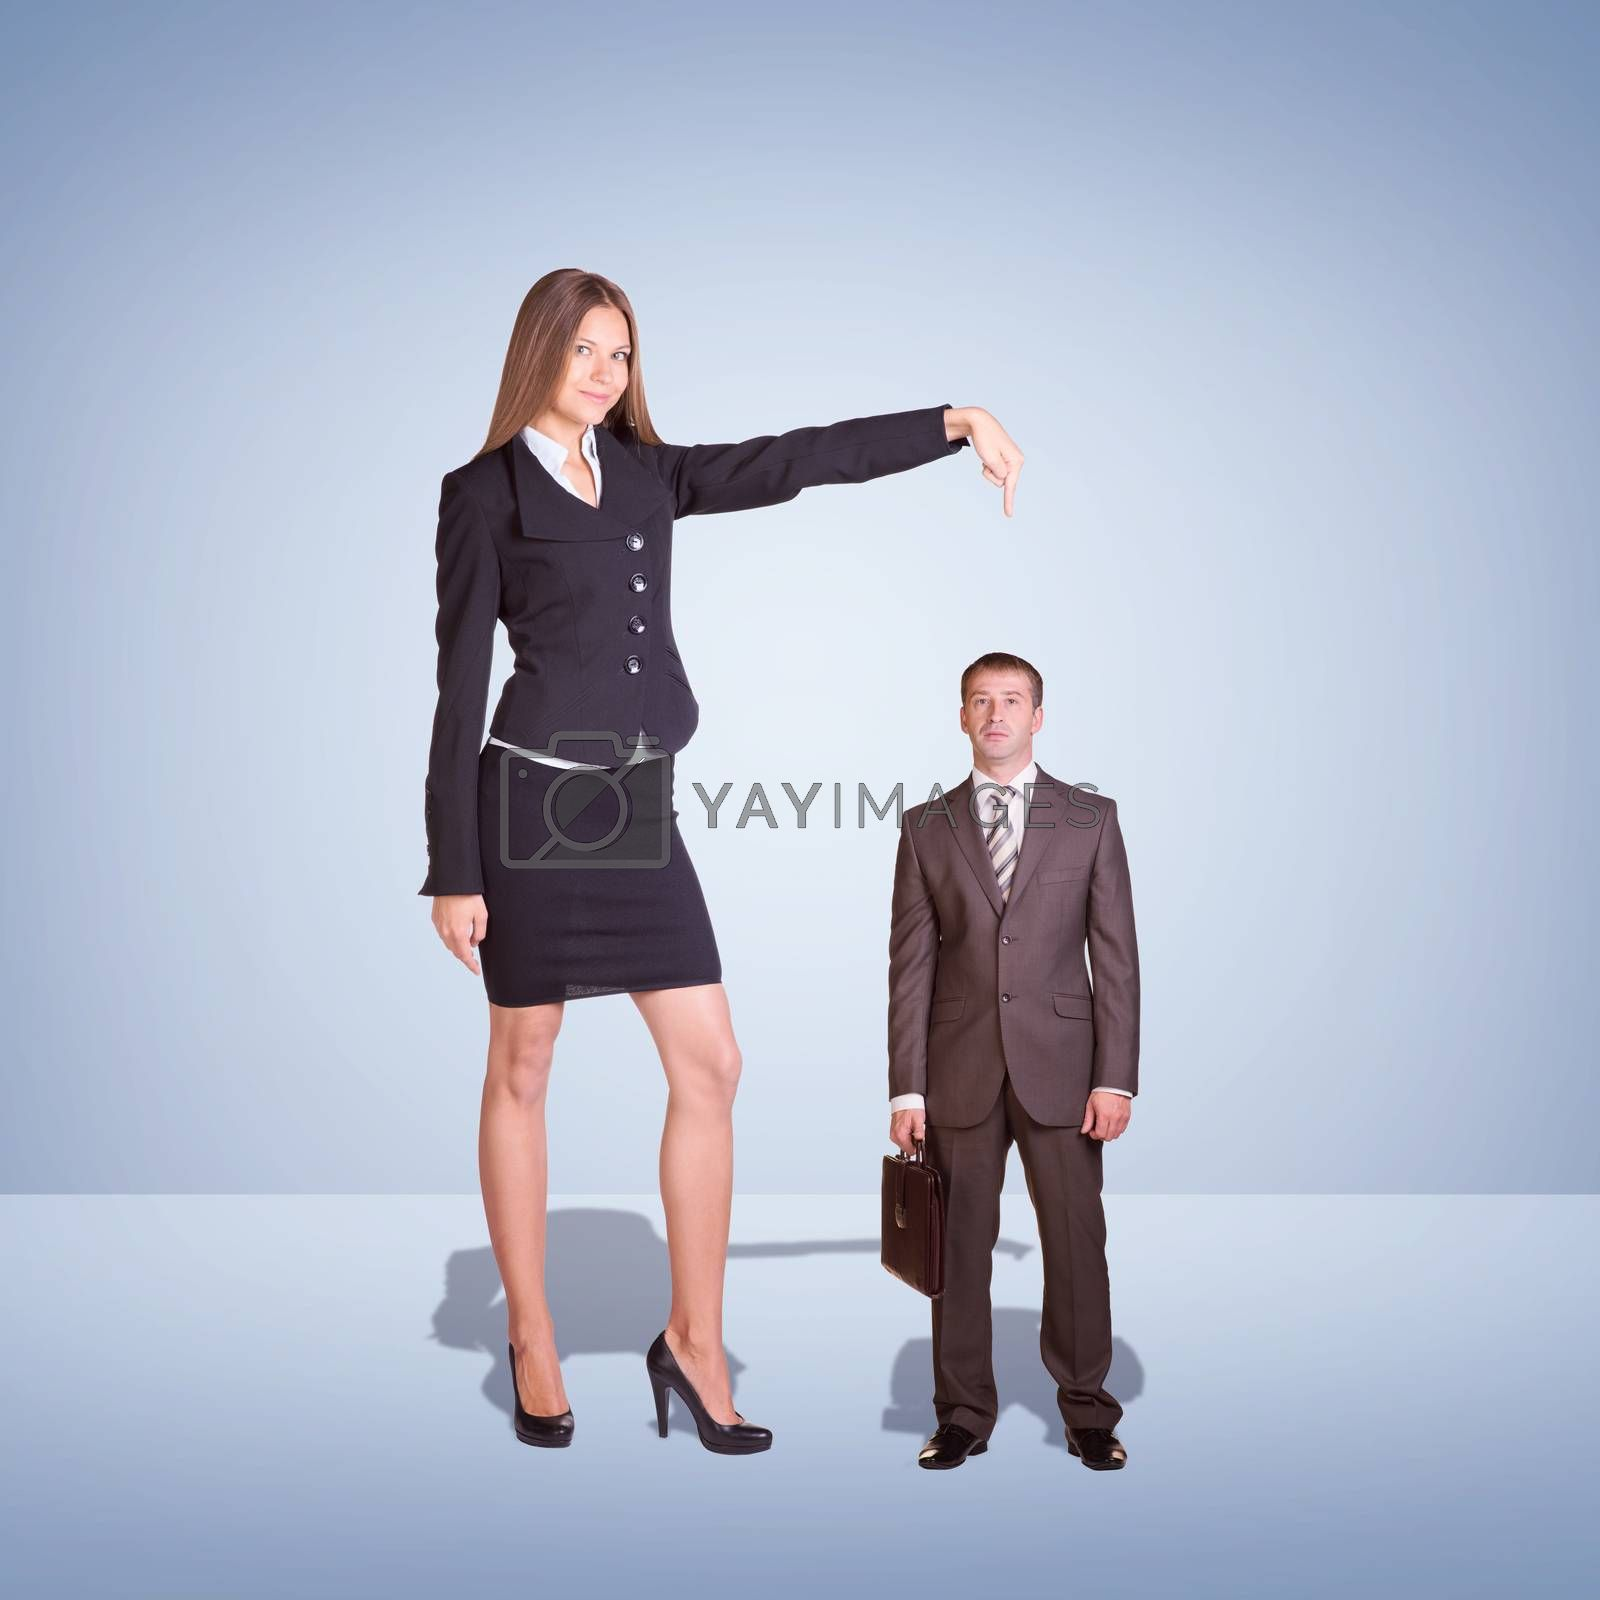 Smiling Young Businesswoman Pointing to small Businessman. Blue background